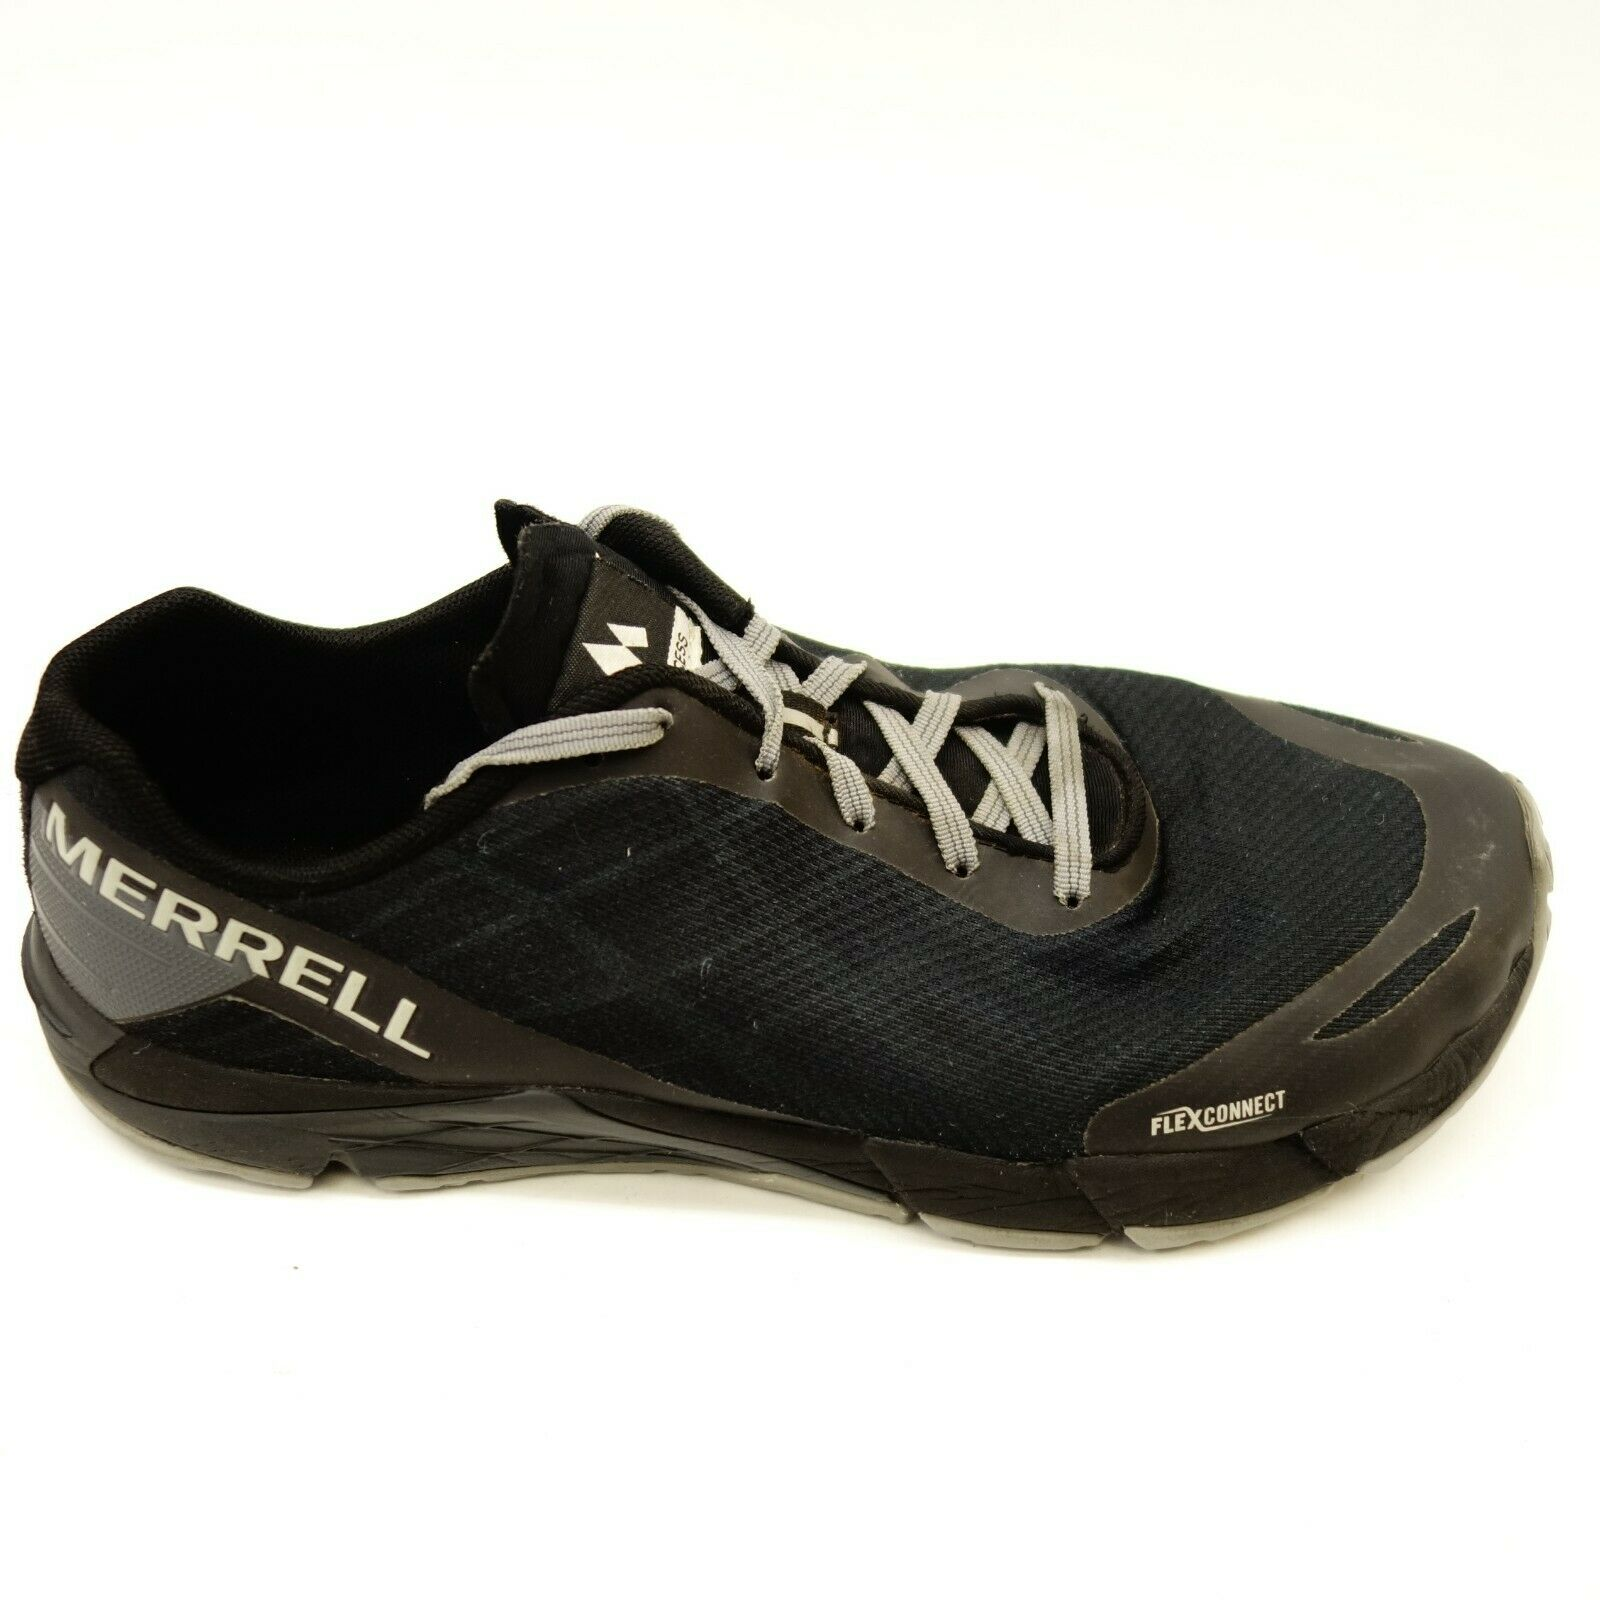 Merrell Mens Size 8 Bare Access Flex Mesh Black Athletic Hiking Running shoes